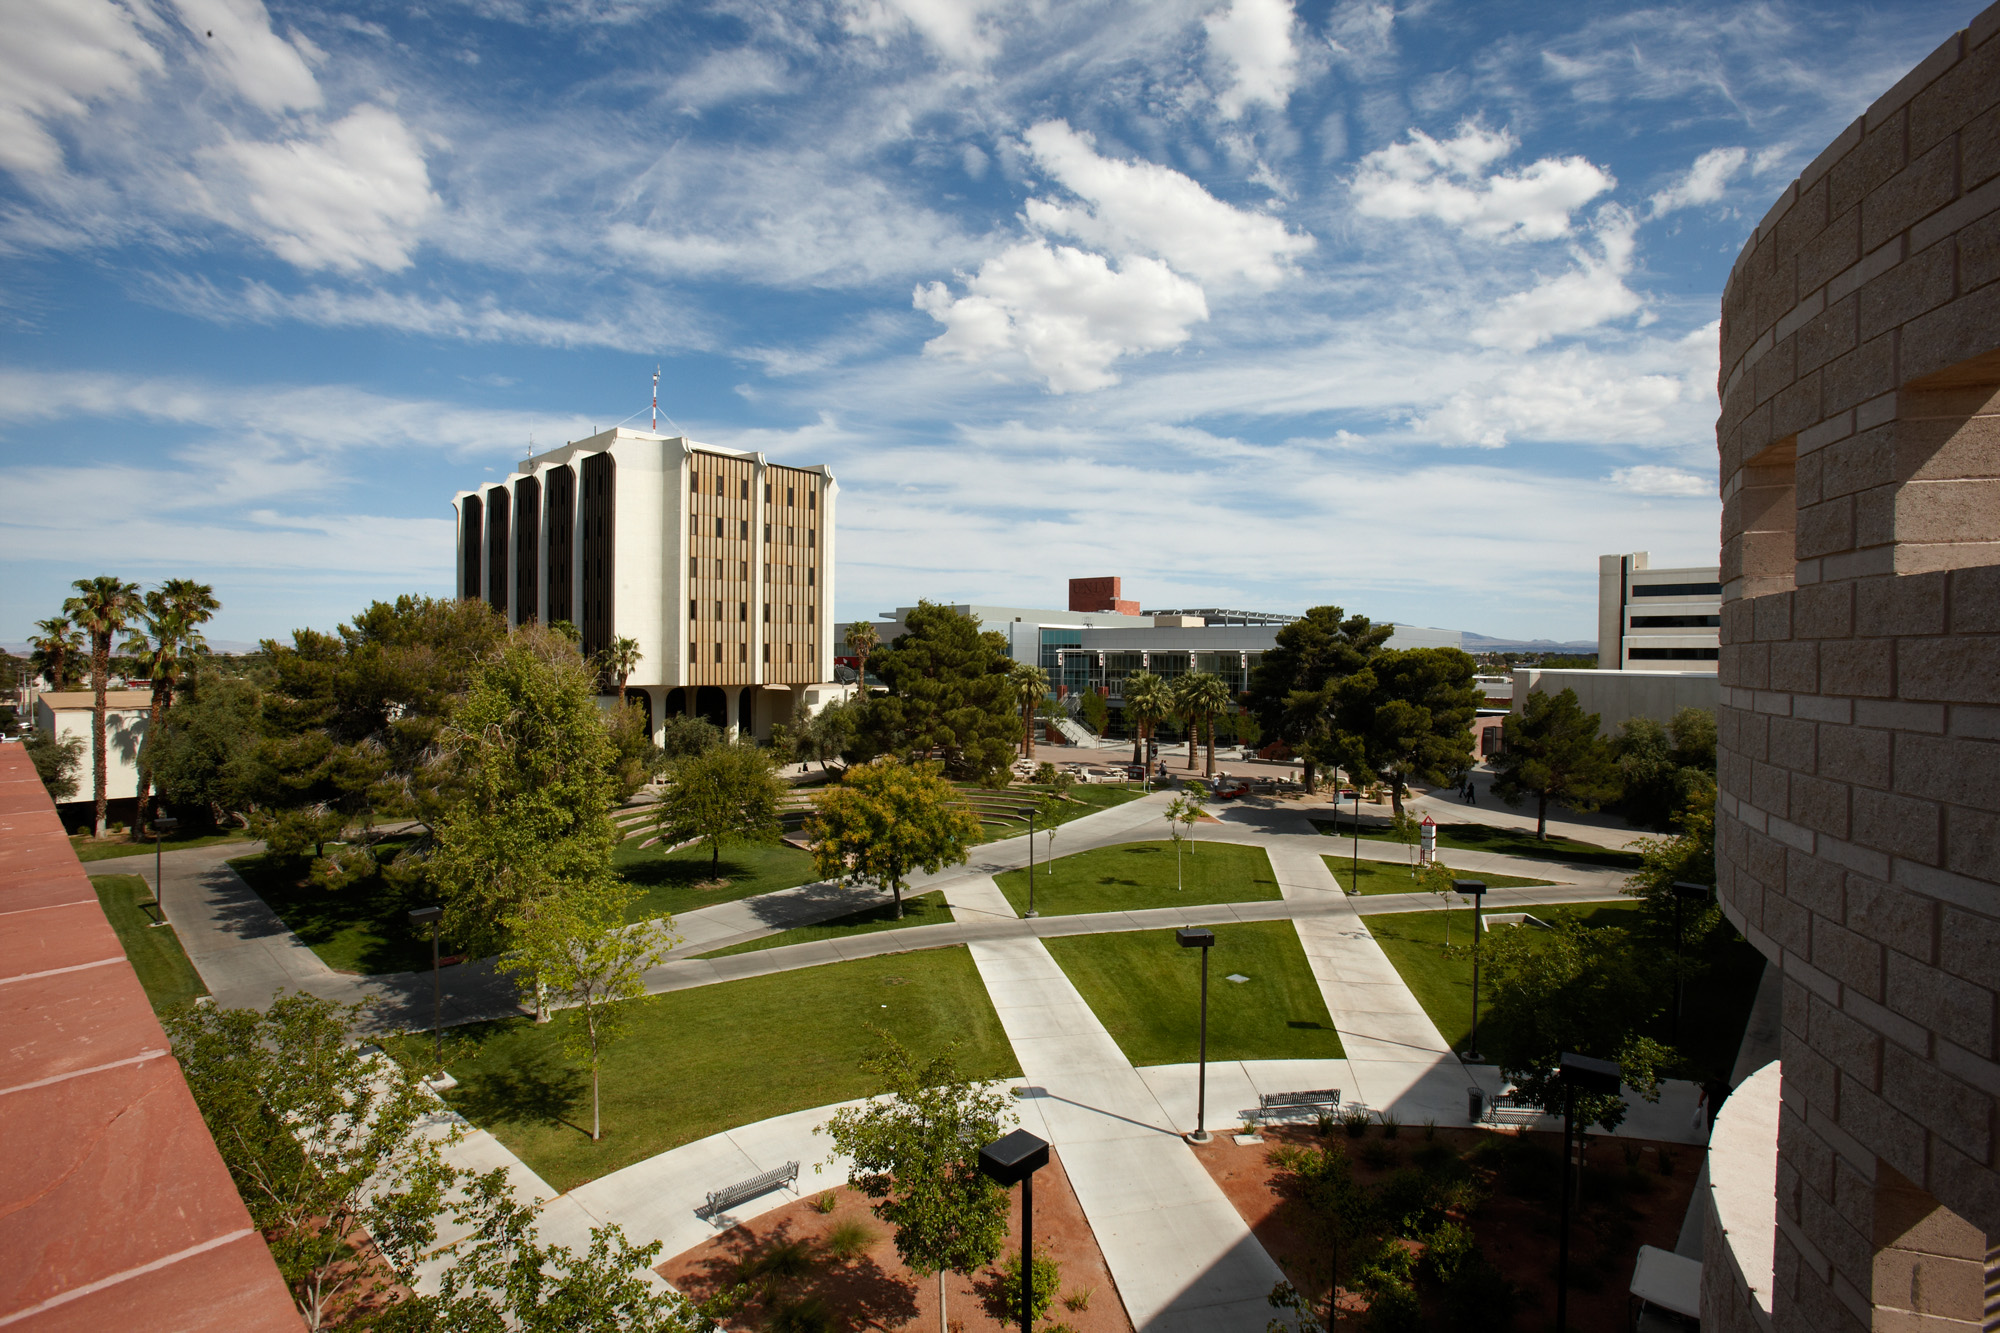 A view of UNLV main campus from Wright Hall overlooking Student Union and FDH.